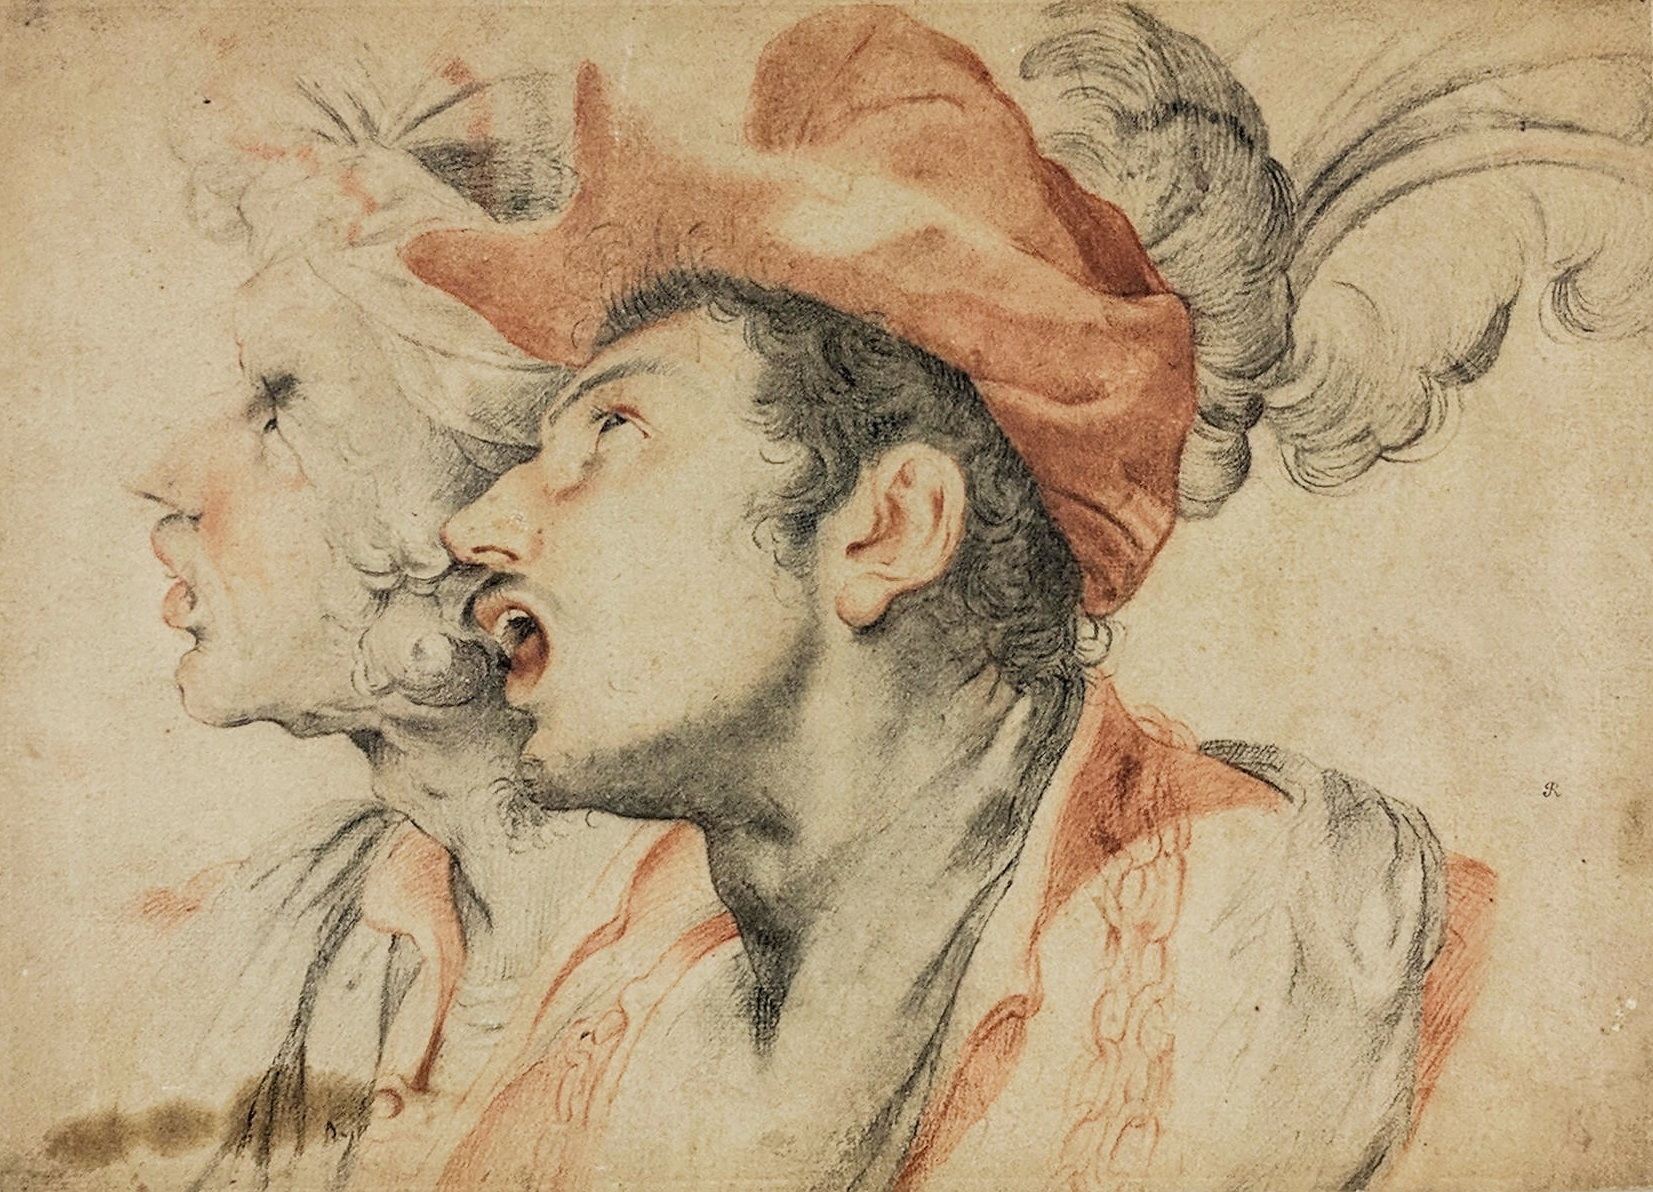 Attr Guillio Cesare Procaccini (1574-1625) Two Men Chalk Sketch. Sold For $16,250 At Partner Capsule Gallery Auction